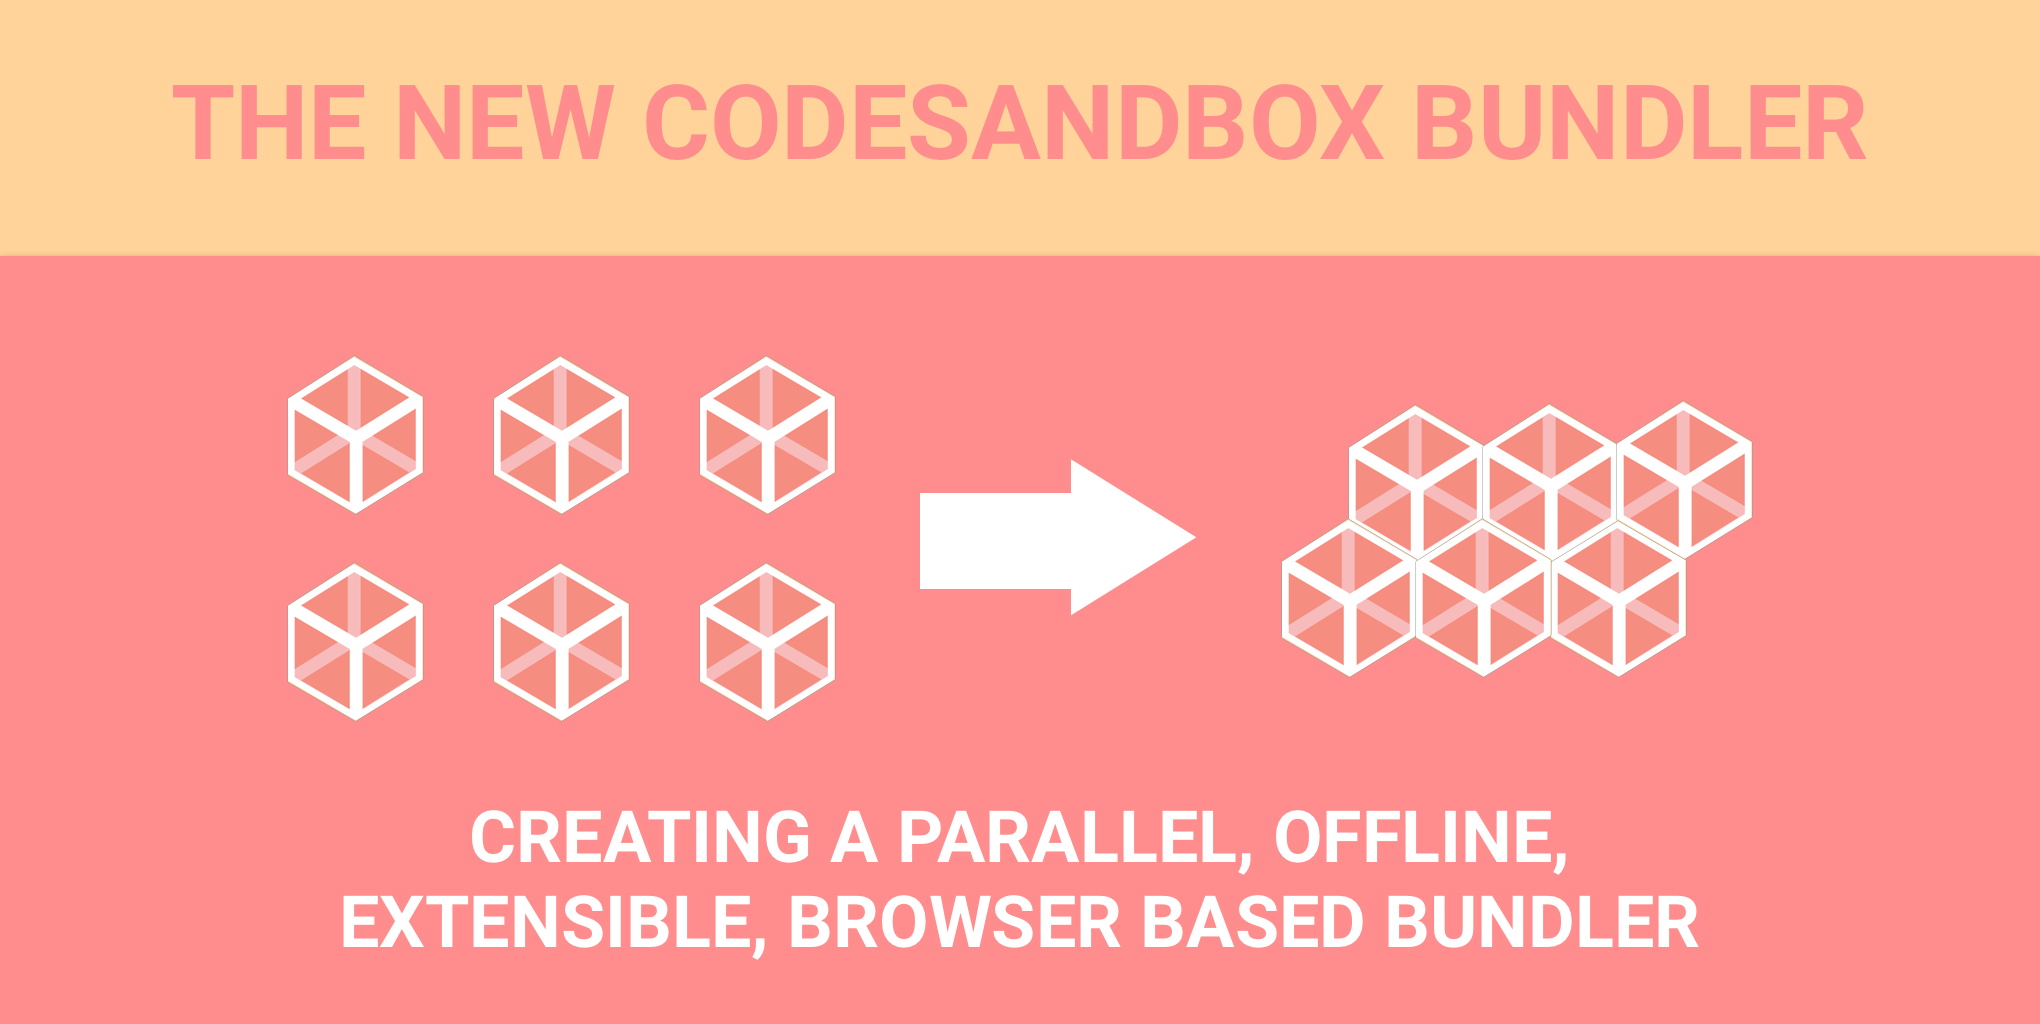 Can You Earn Robux While Offline - Creating A Parallel Offline Extensible Browser Based